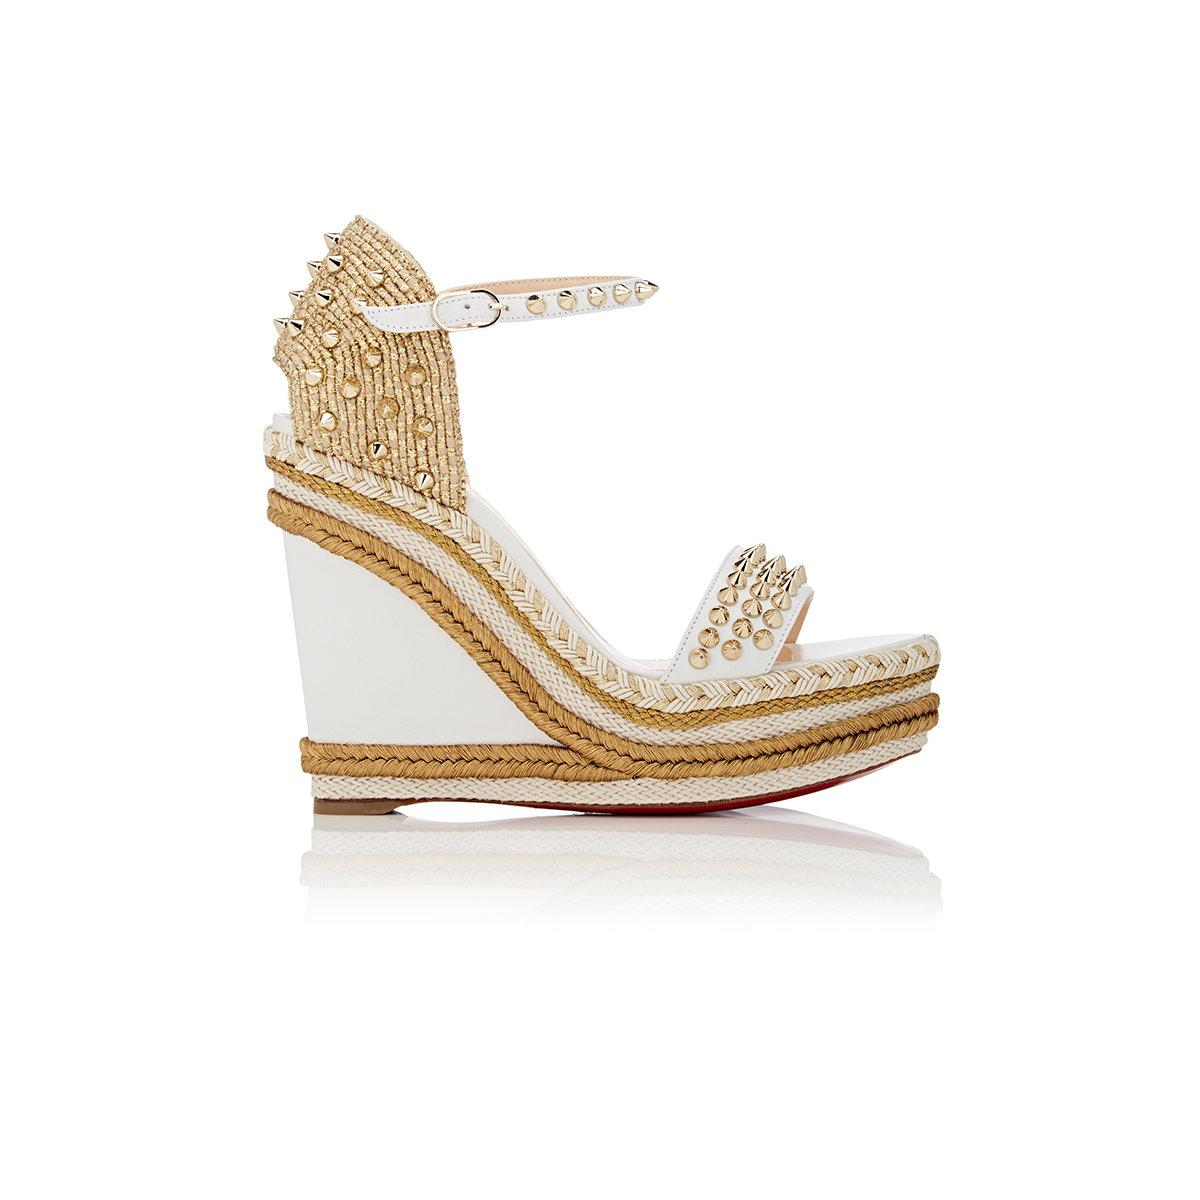 3612b6ede8 Christian Louboutin Madmonica Leather Wedge Espadrille Sandals in ...